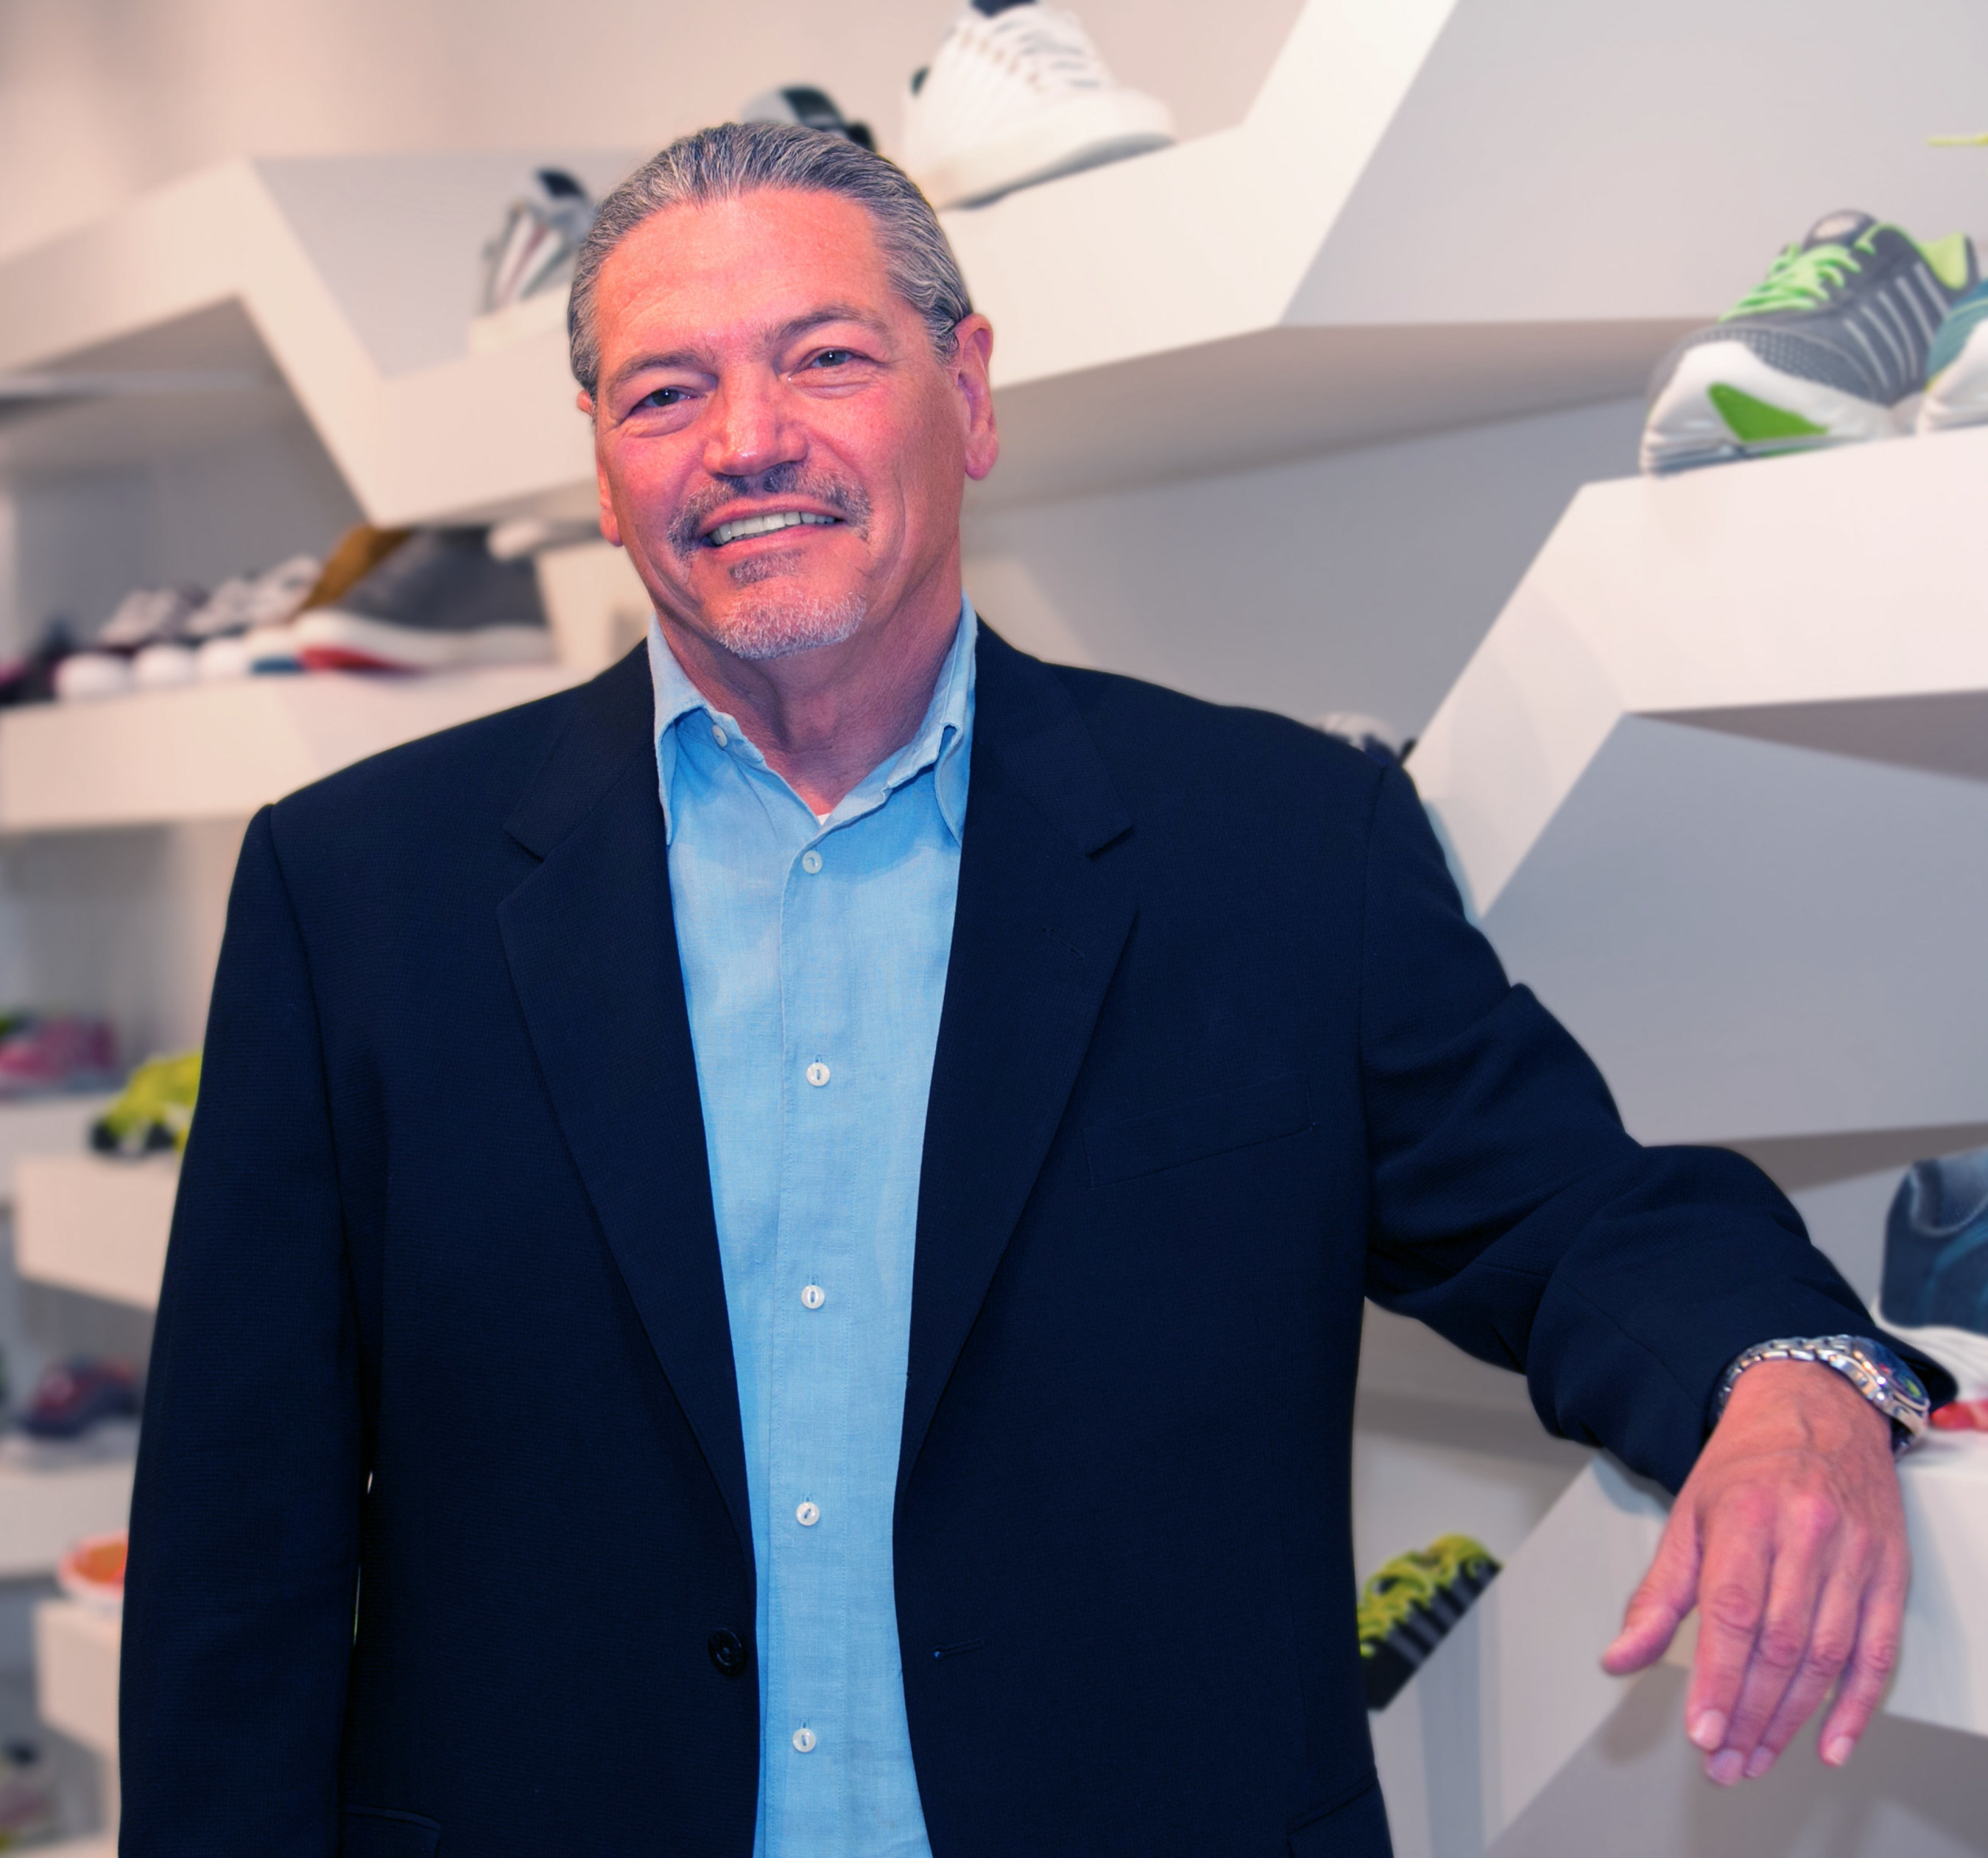 K-Swiss Global Brands adquiere ONE-Distribution, incluyendo SUPRA Footwear y KR3W Denim Co.